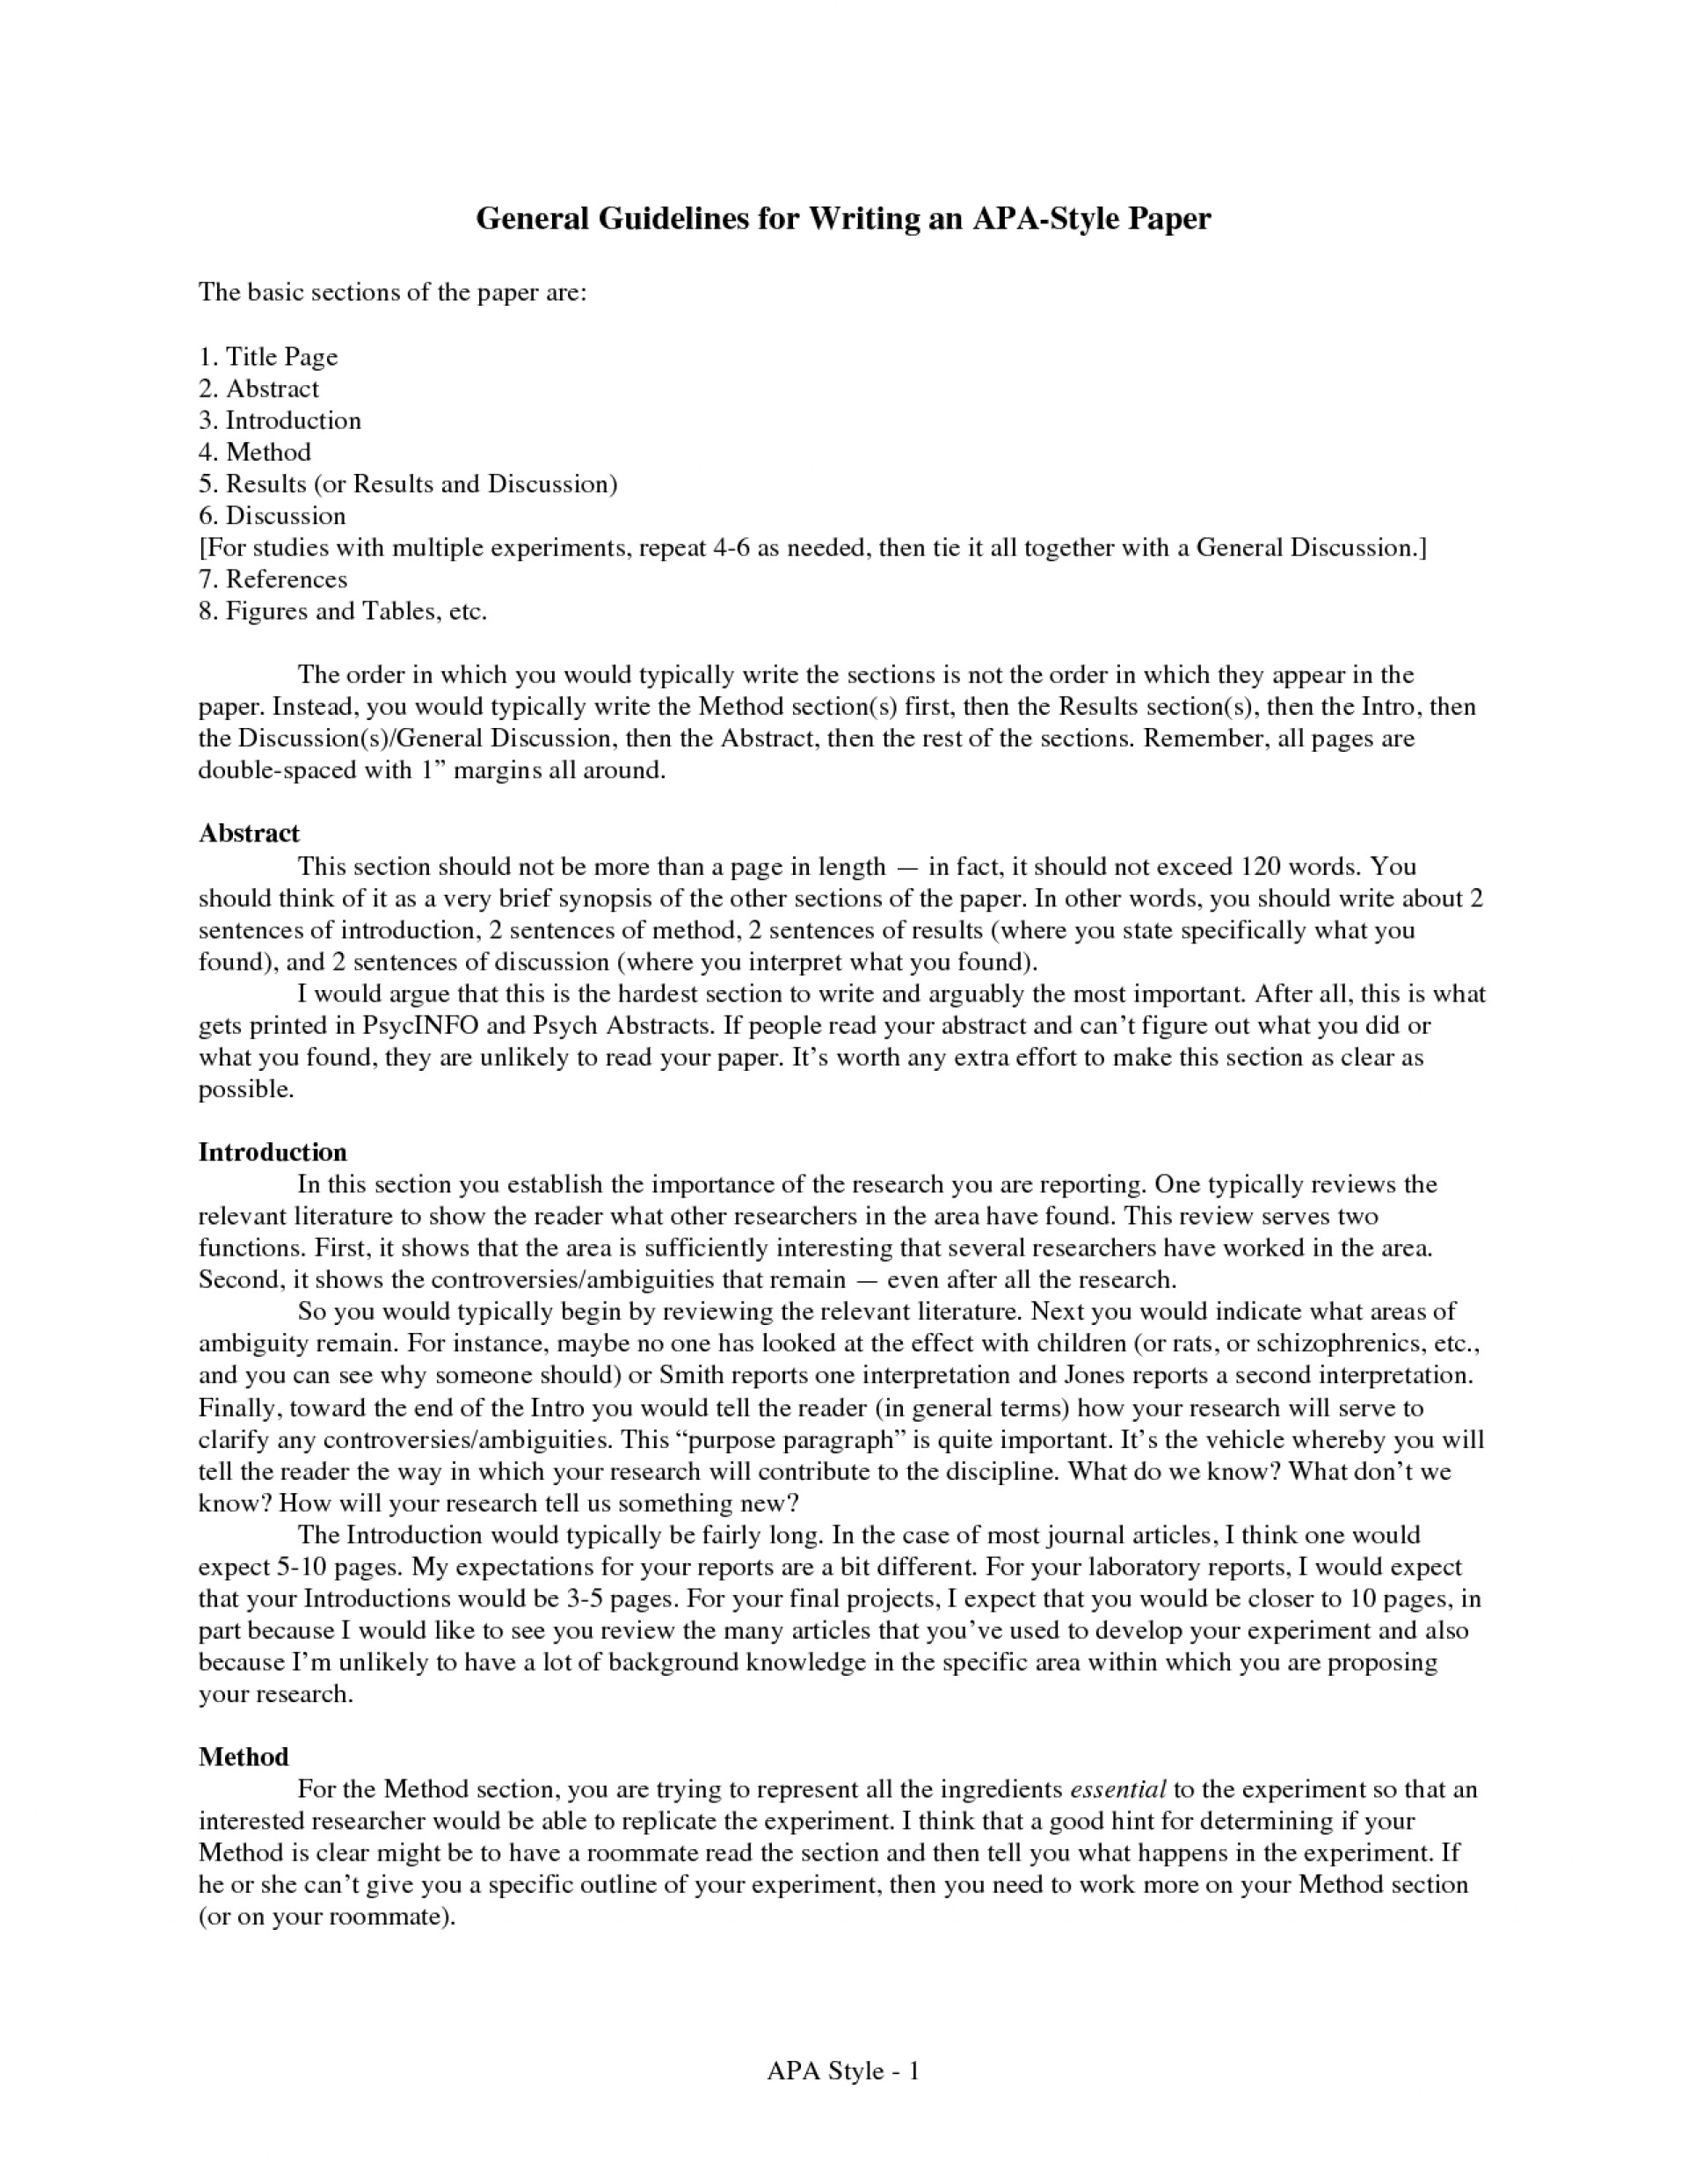 004 Research Paper Discussion Section Of Apa Sensational A Apa-style How To Write The 1920